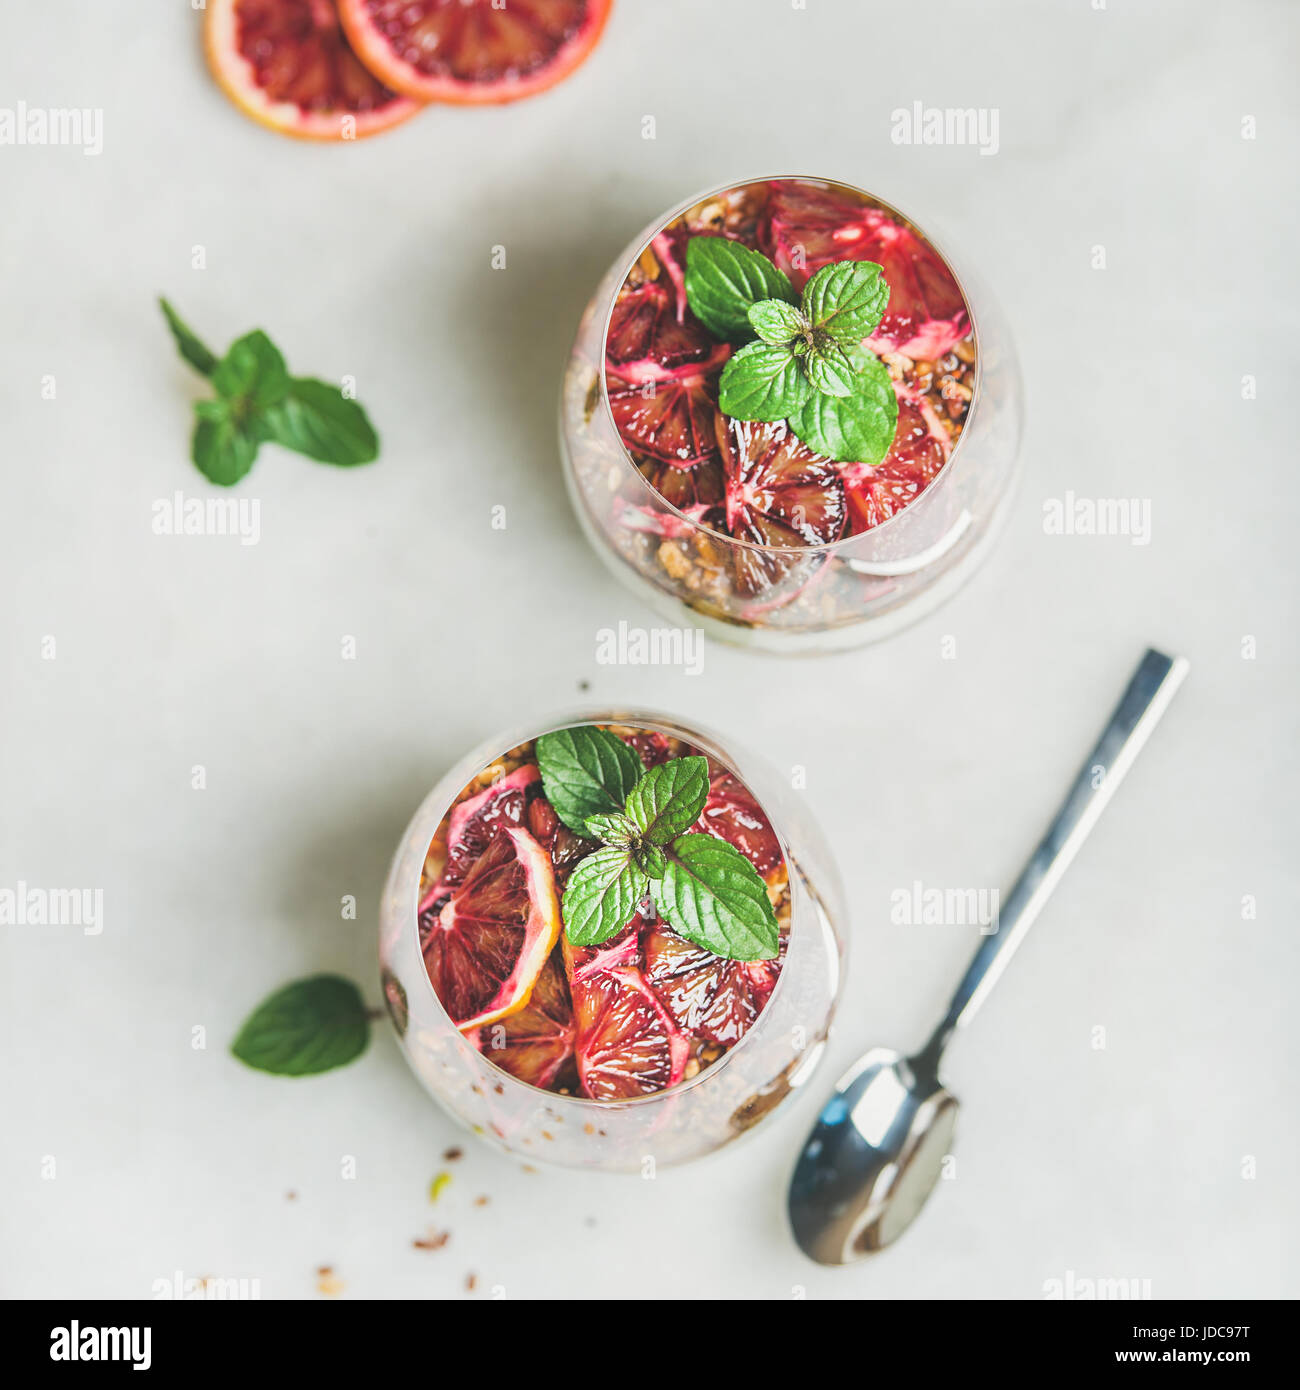 Healthy breakfast with yogurt, granola, orange layered parfait - Stock Image